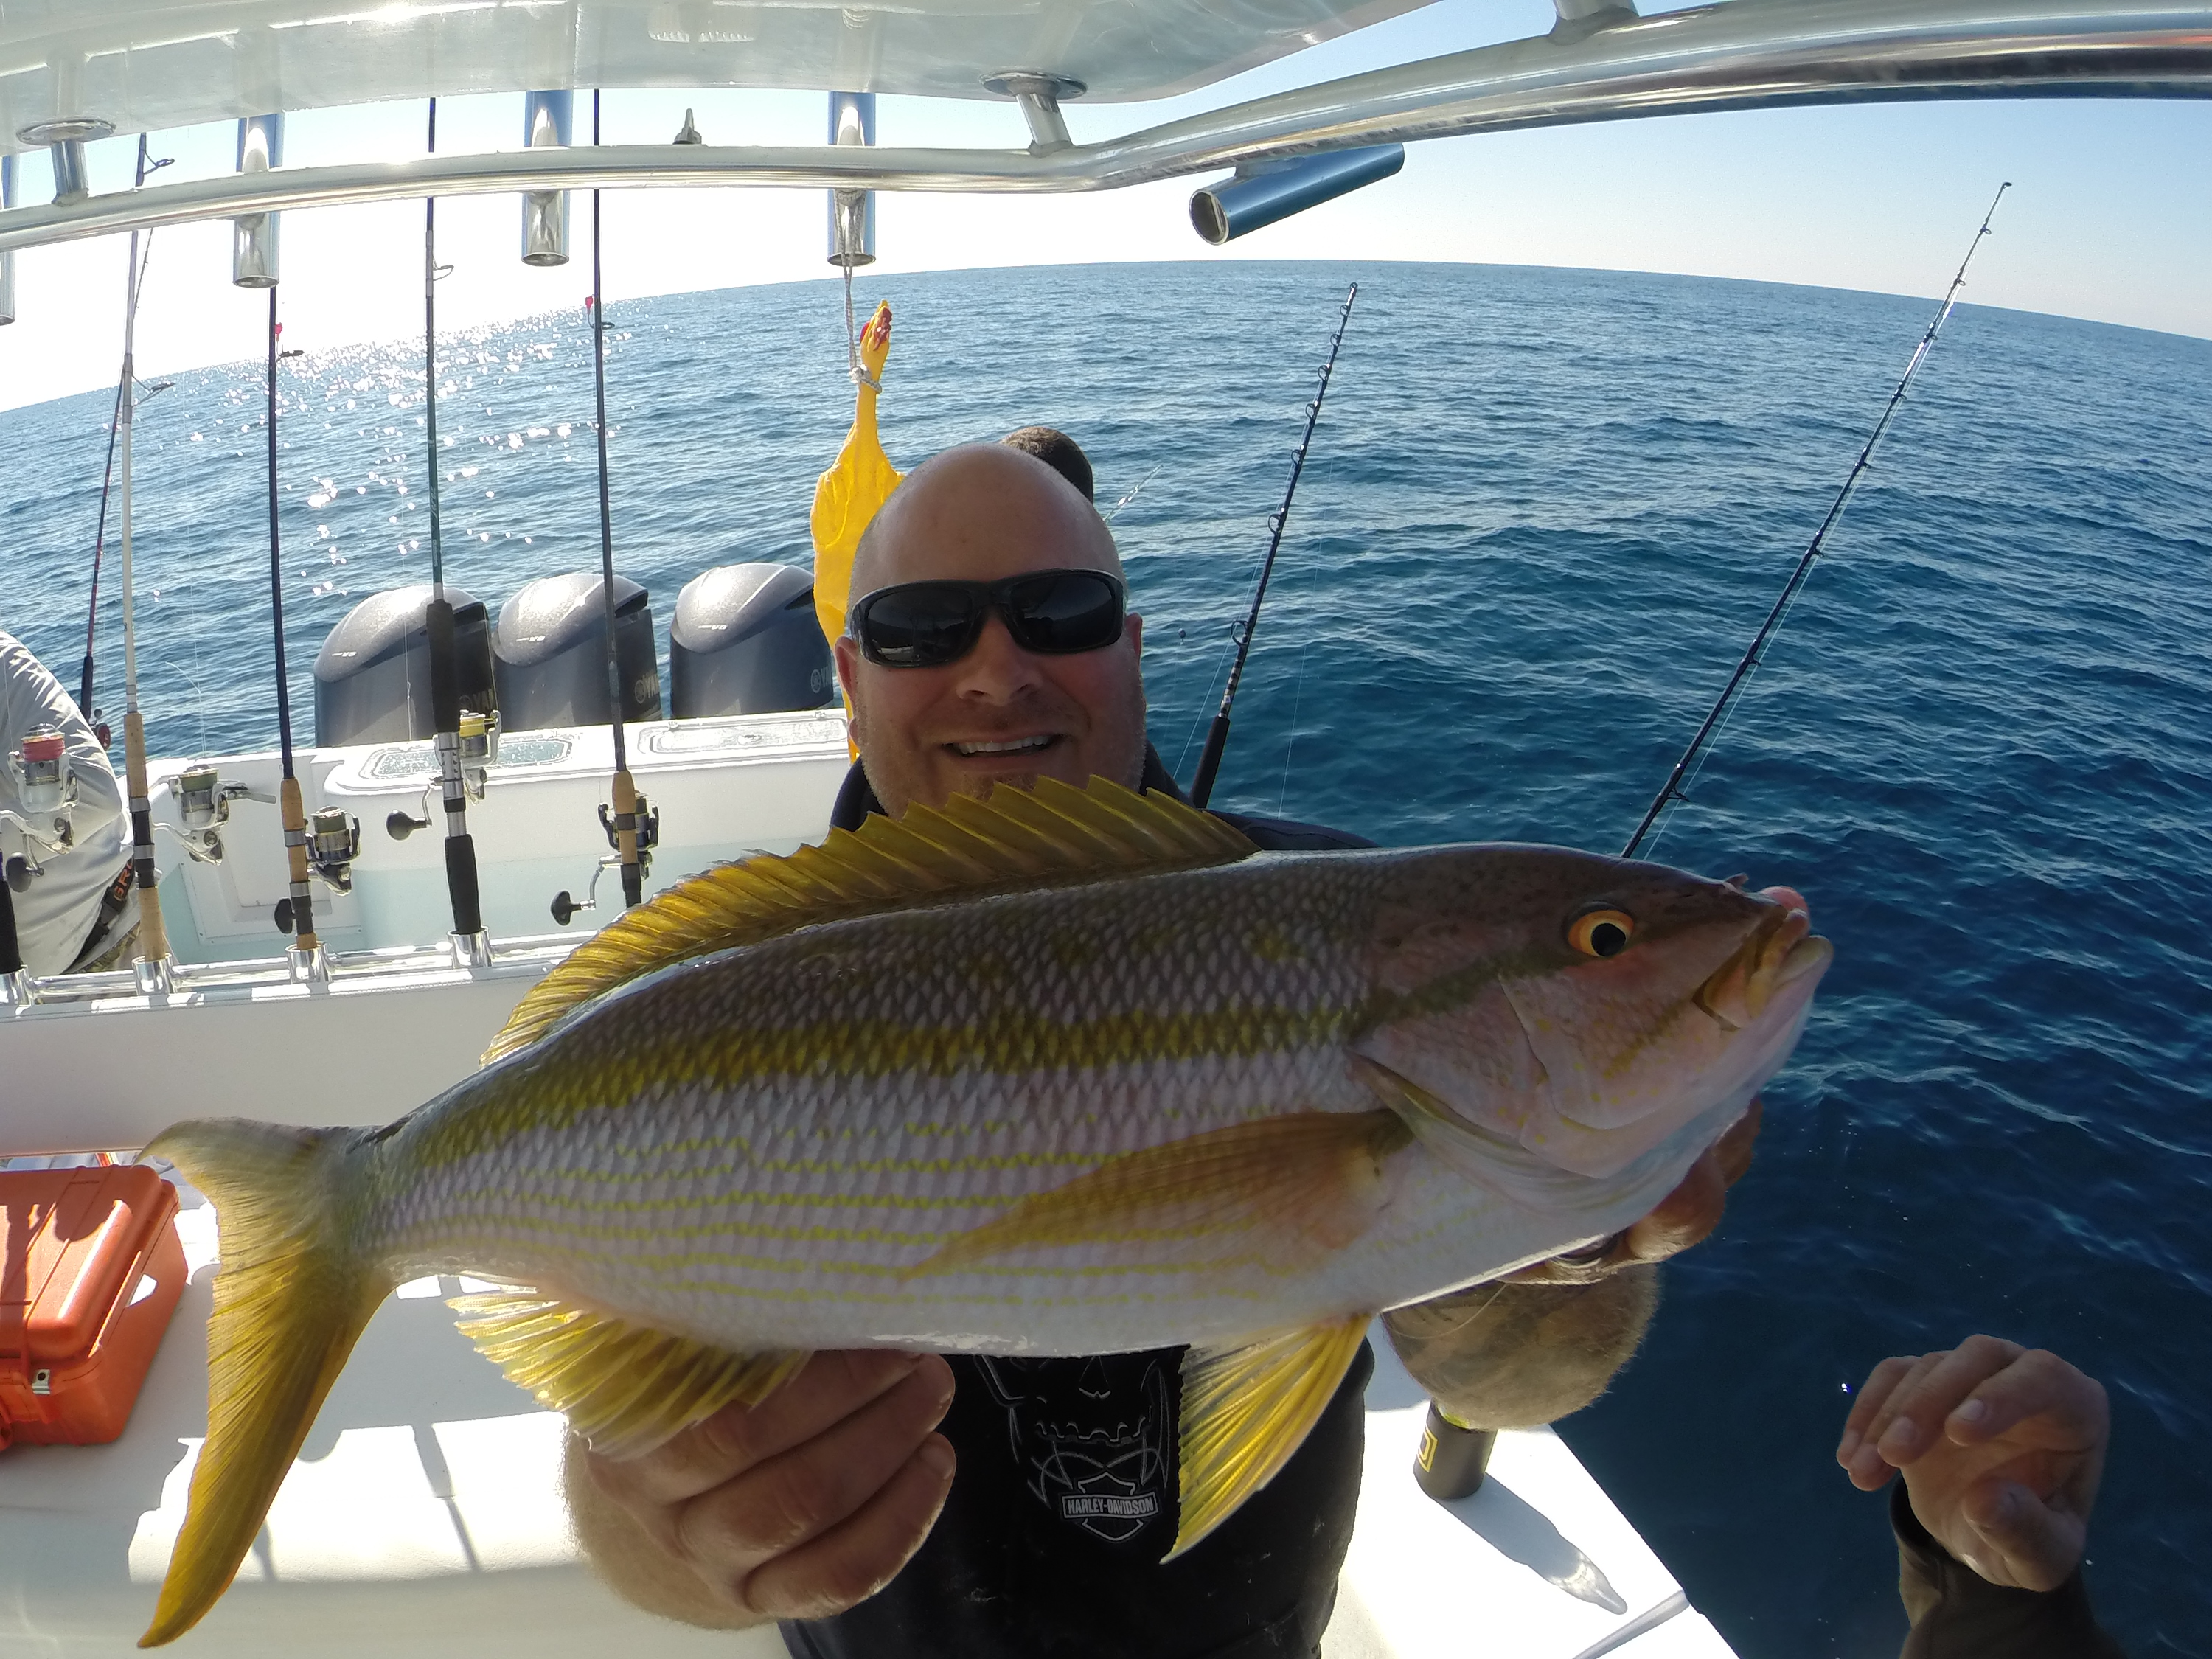 Weekly deep sea fishing charters recap feb 16th feb 23rd for Deep sea fishing trips